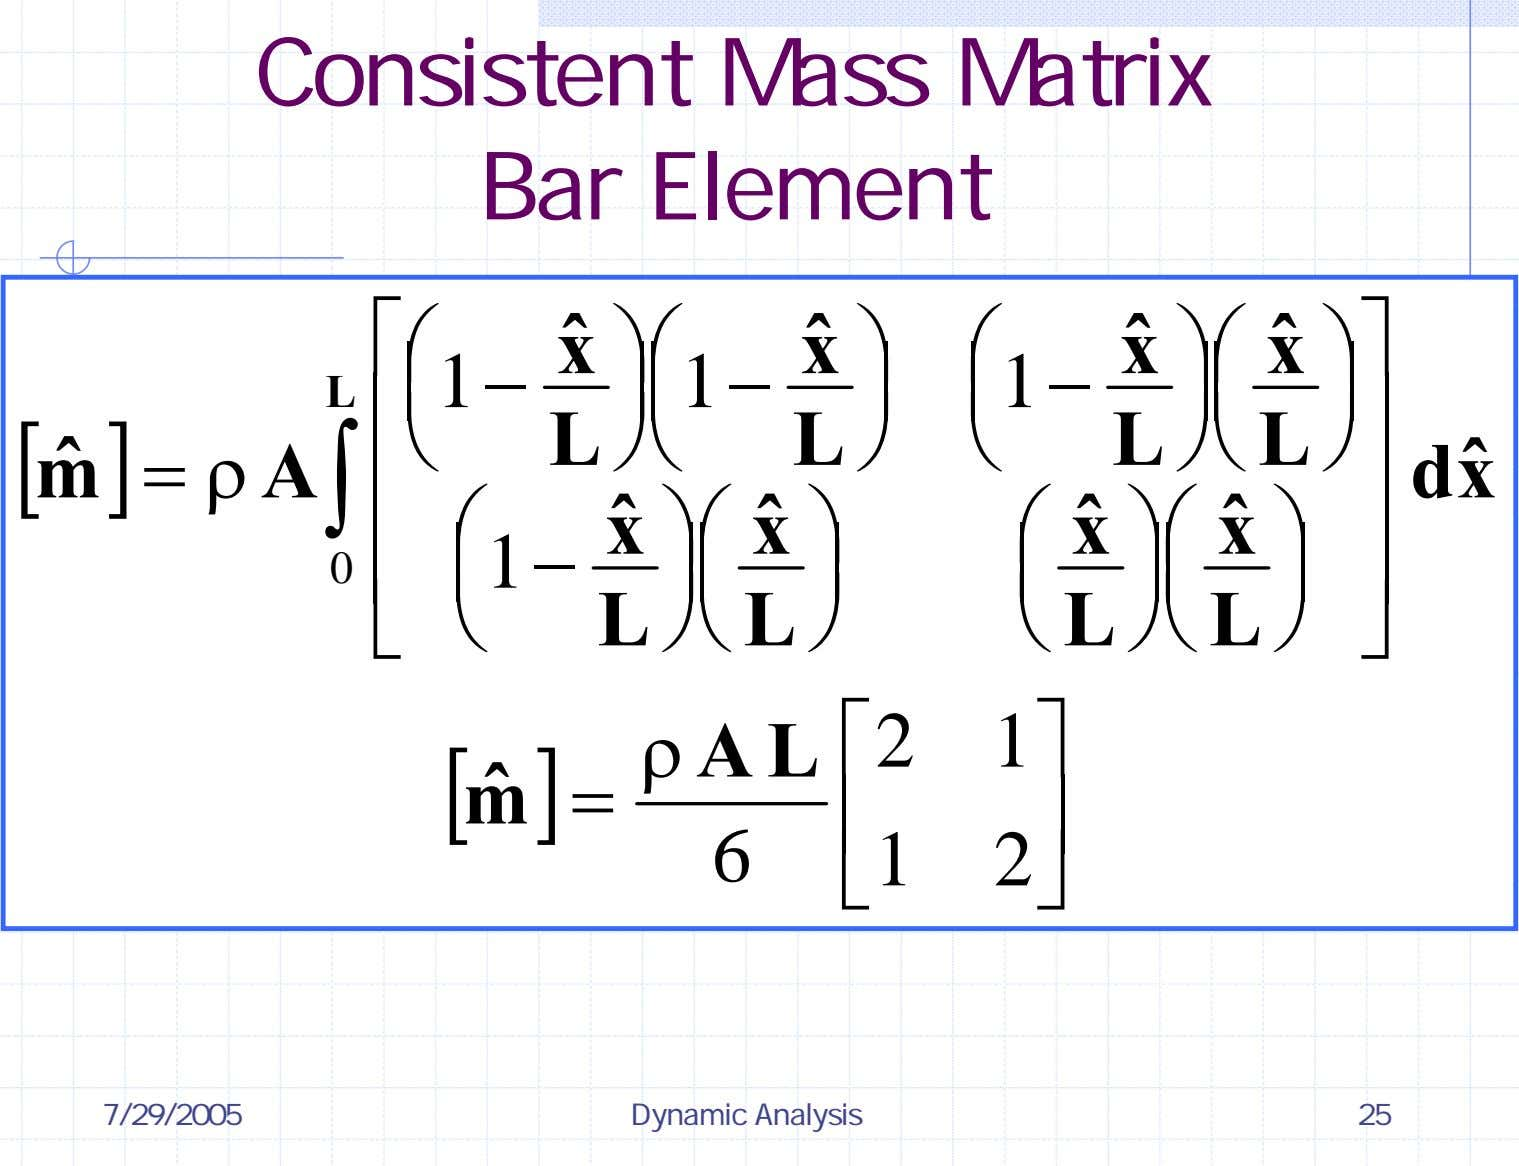 Consistent Mass Matrix Bar Element ⎡ ⎛ xˆ ⎞ ⎛ xˆ ⎞ ⎟ ⎞ ⎛